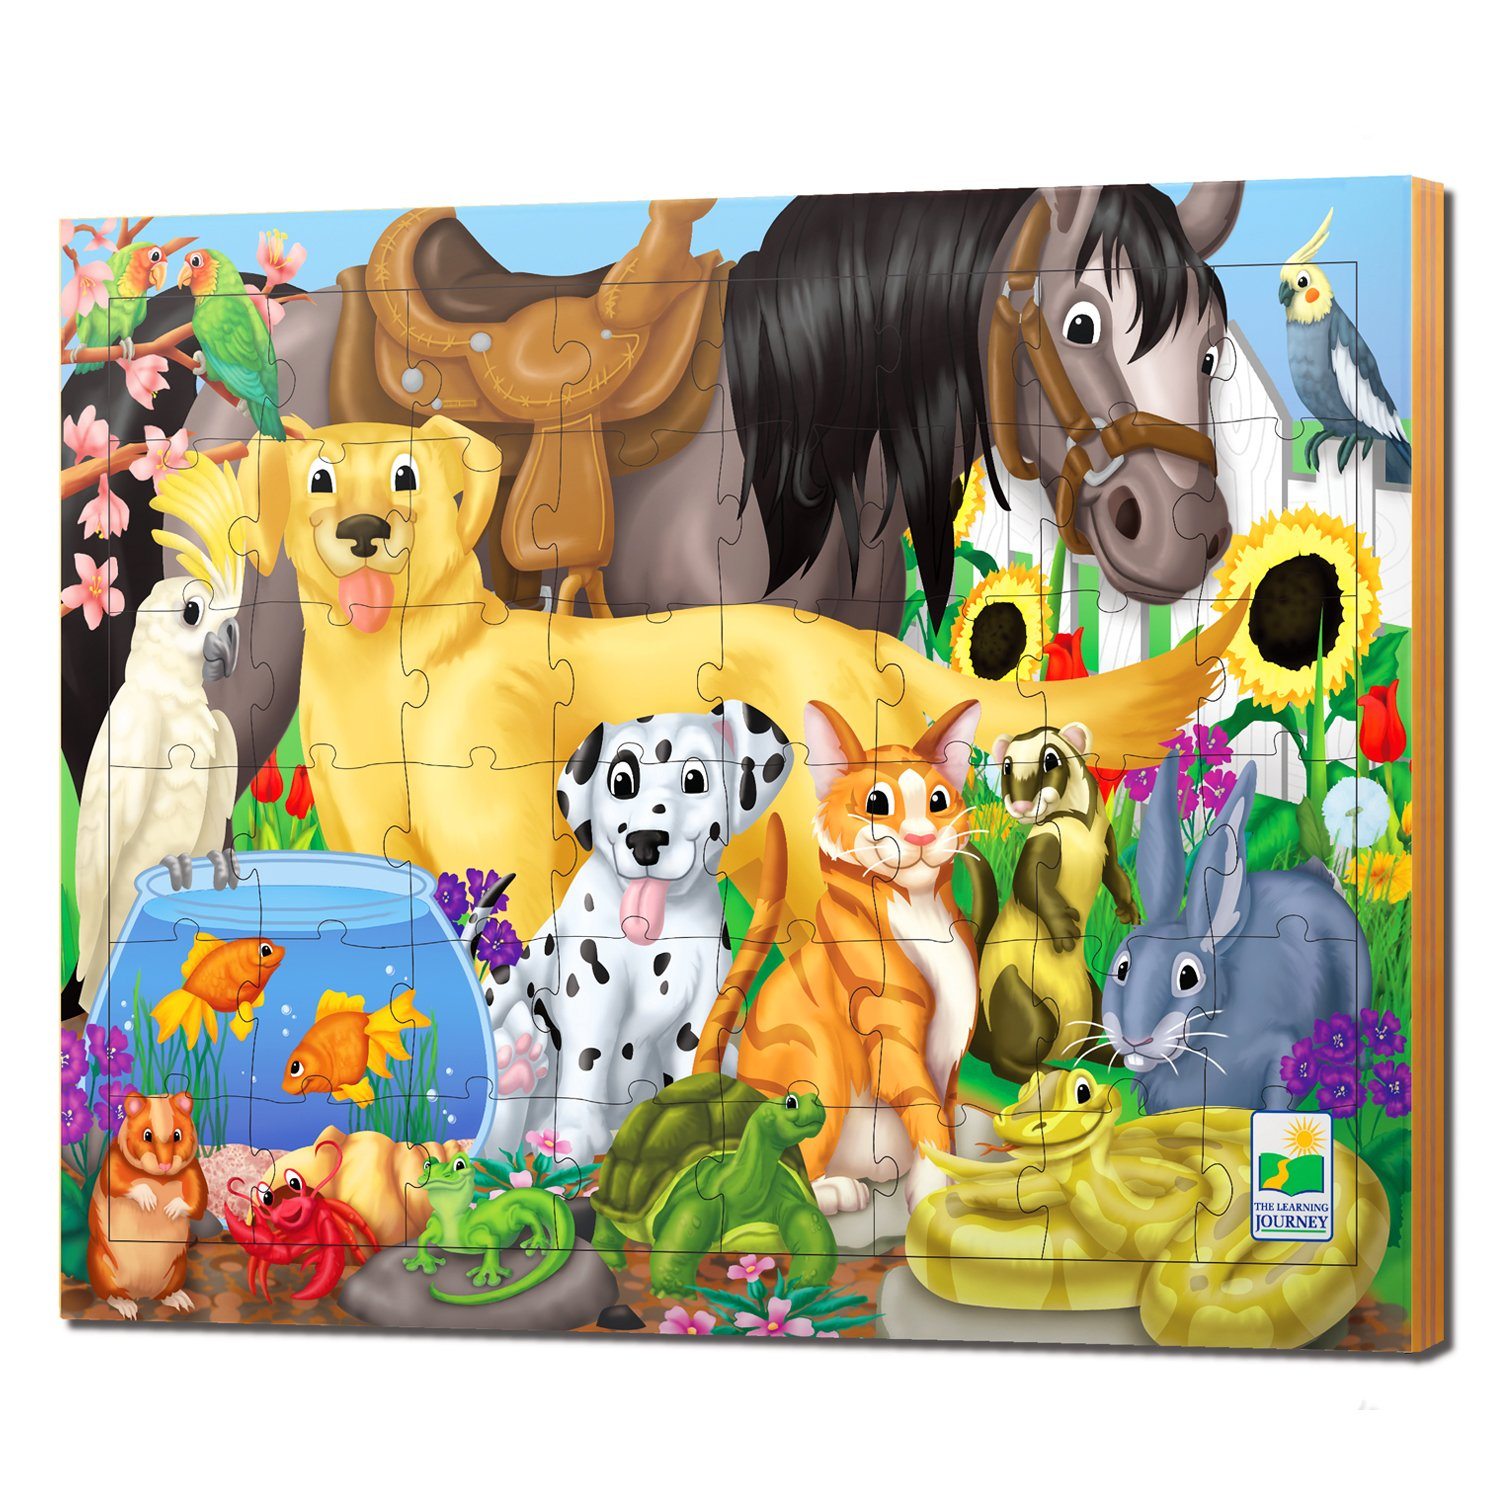 amazon com the learning journey 48pc lift u0026 discover jigsaw